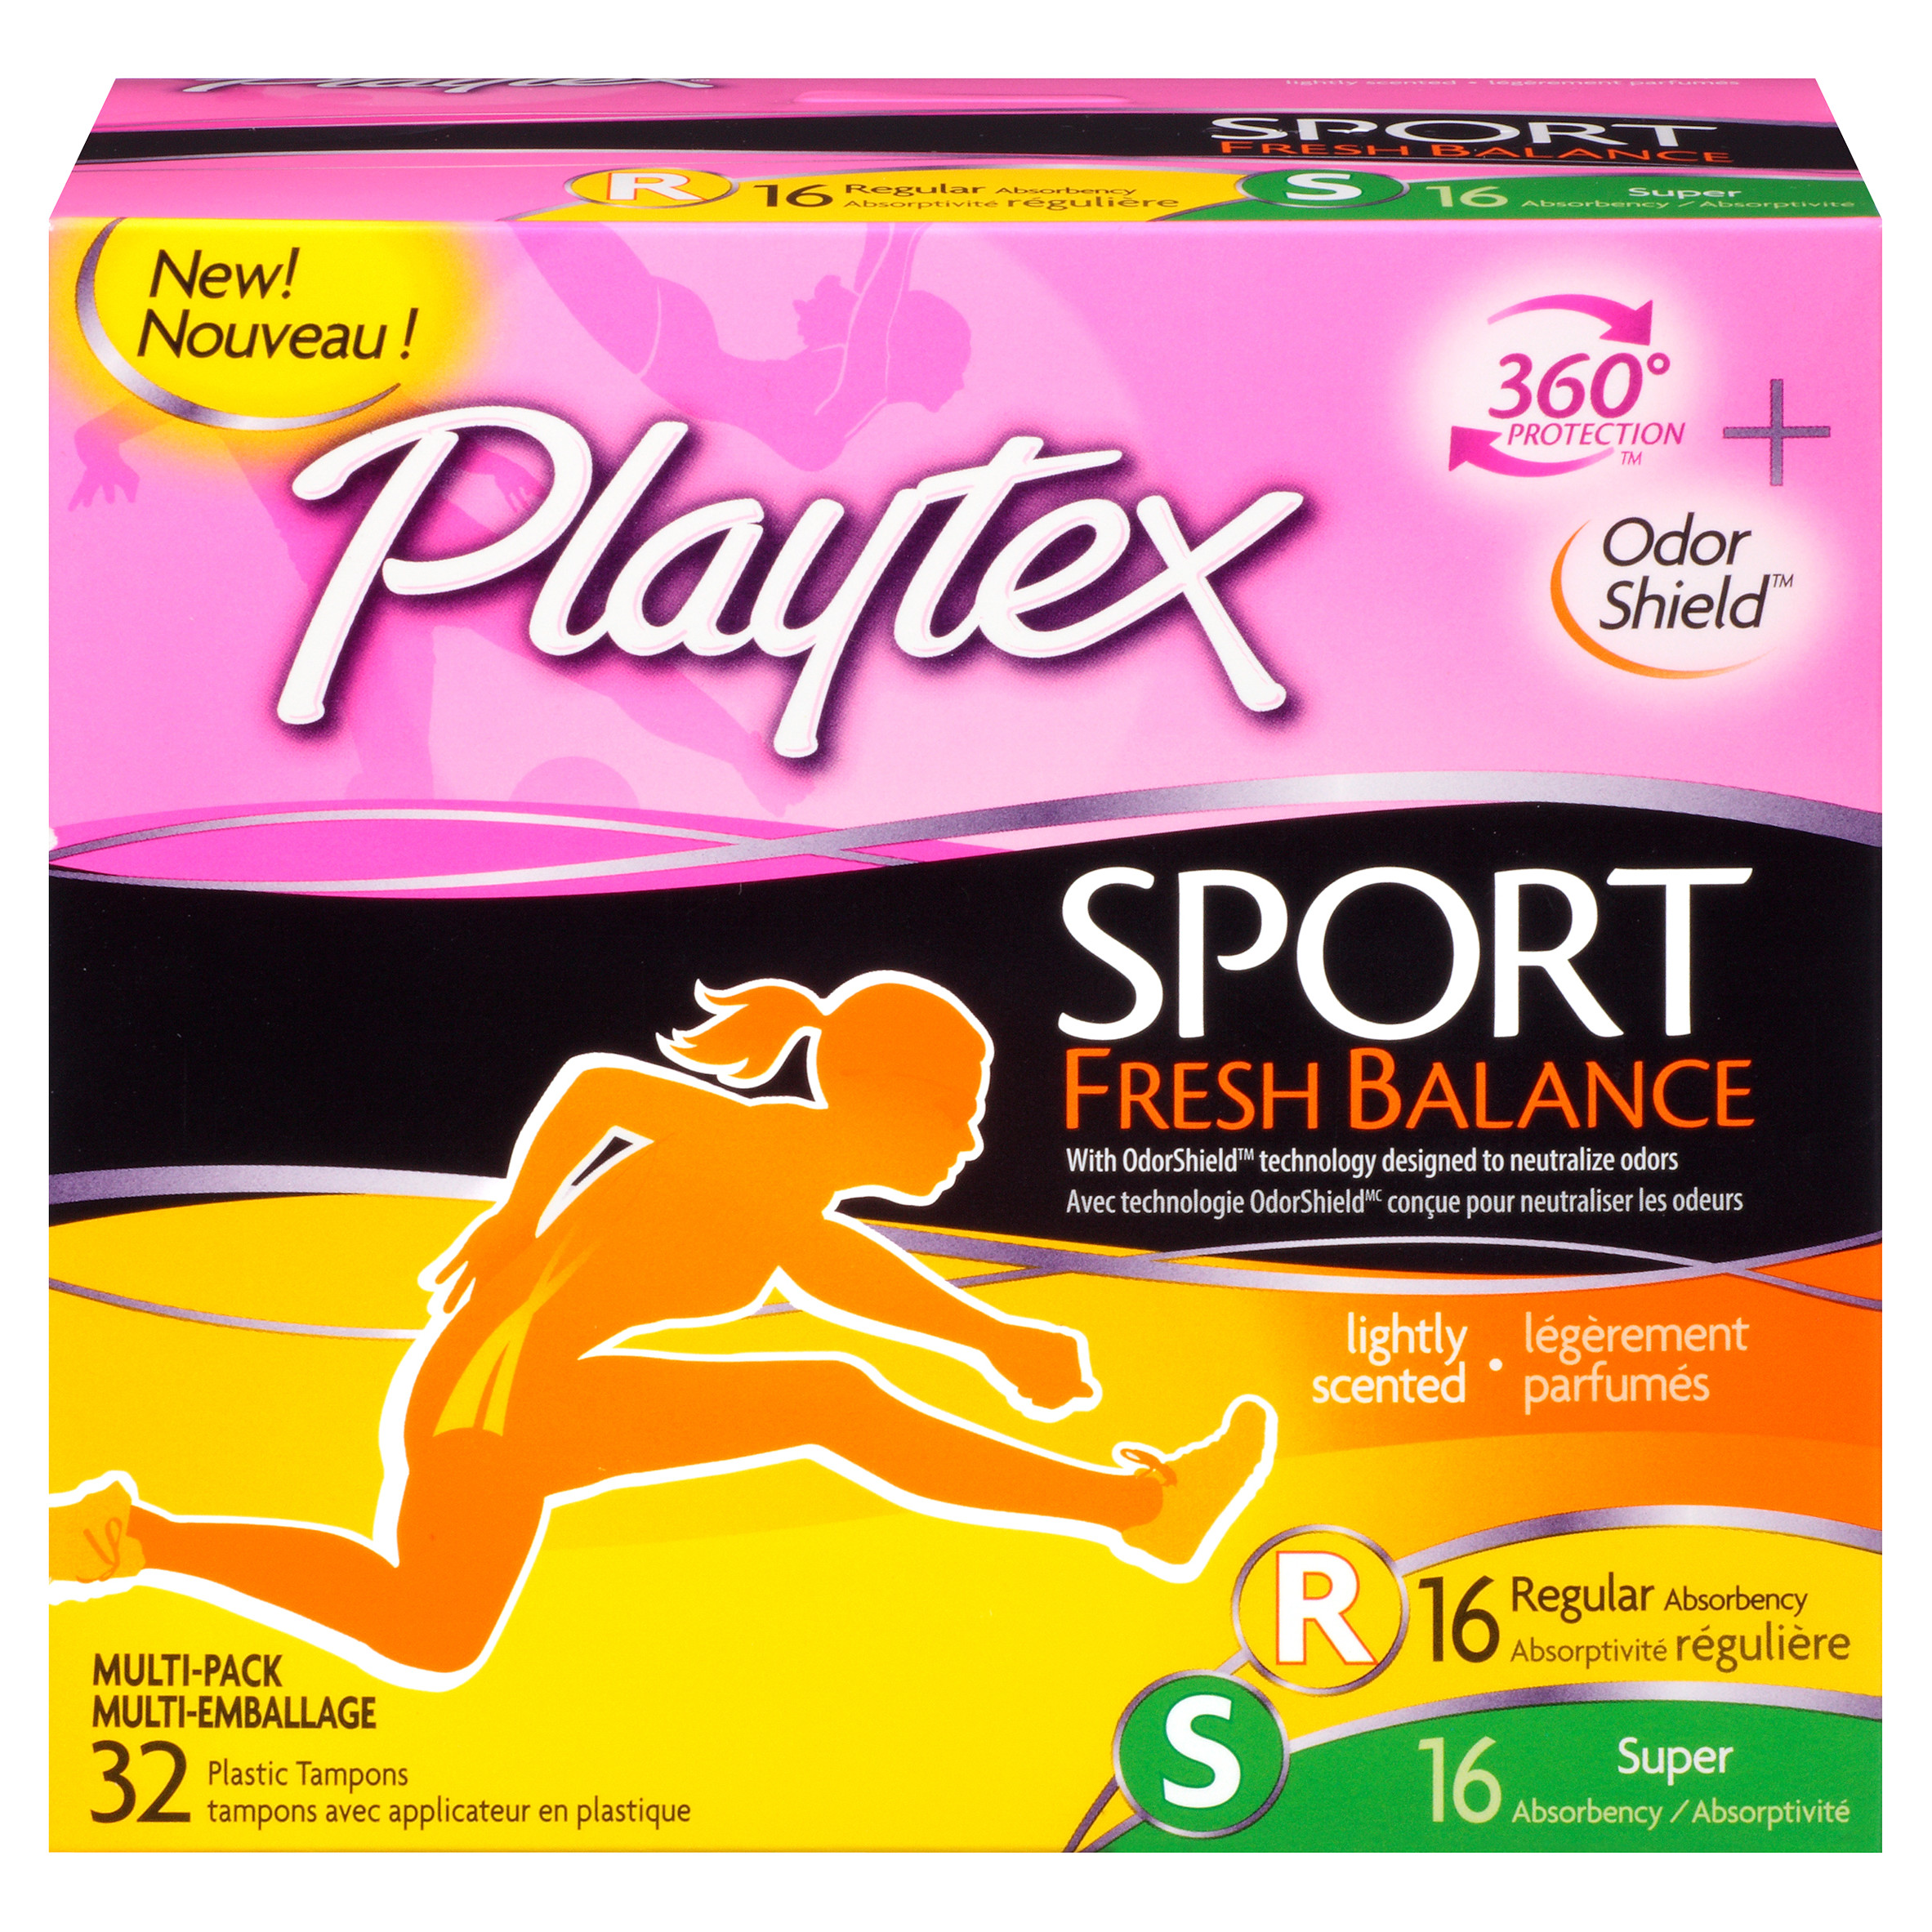 Playtex Sport Tampons Scented Fresh Balance 16 Regular And 16 Super Absorbency - 32 Count